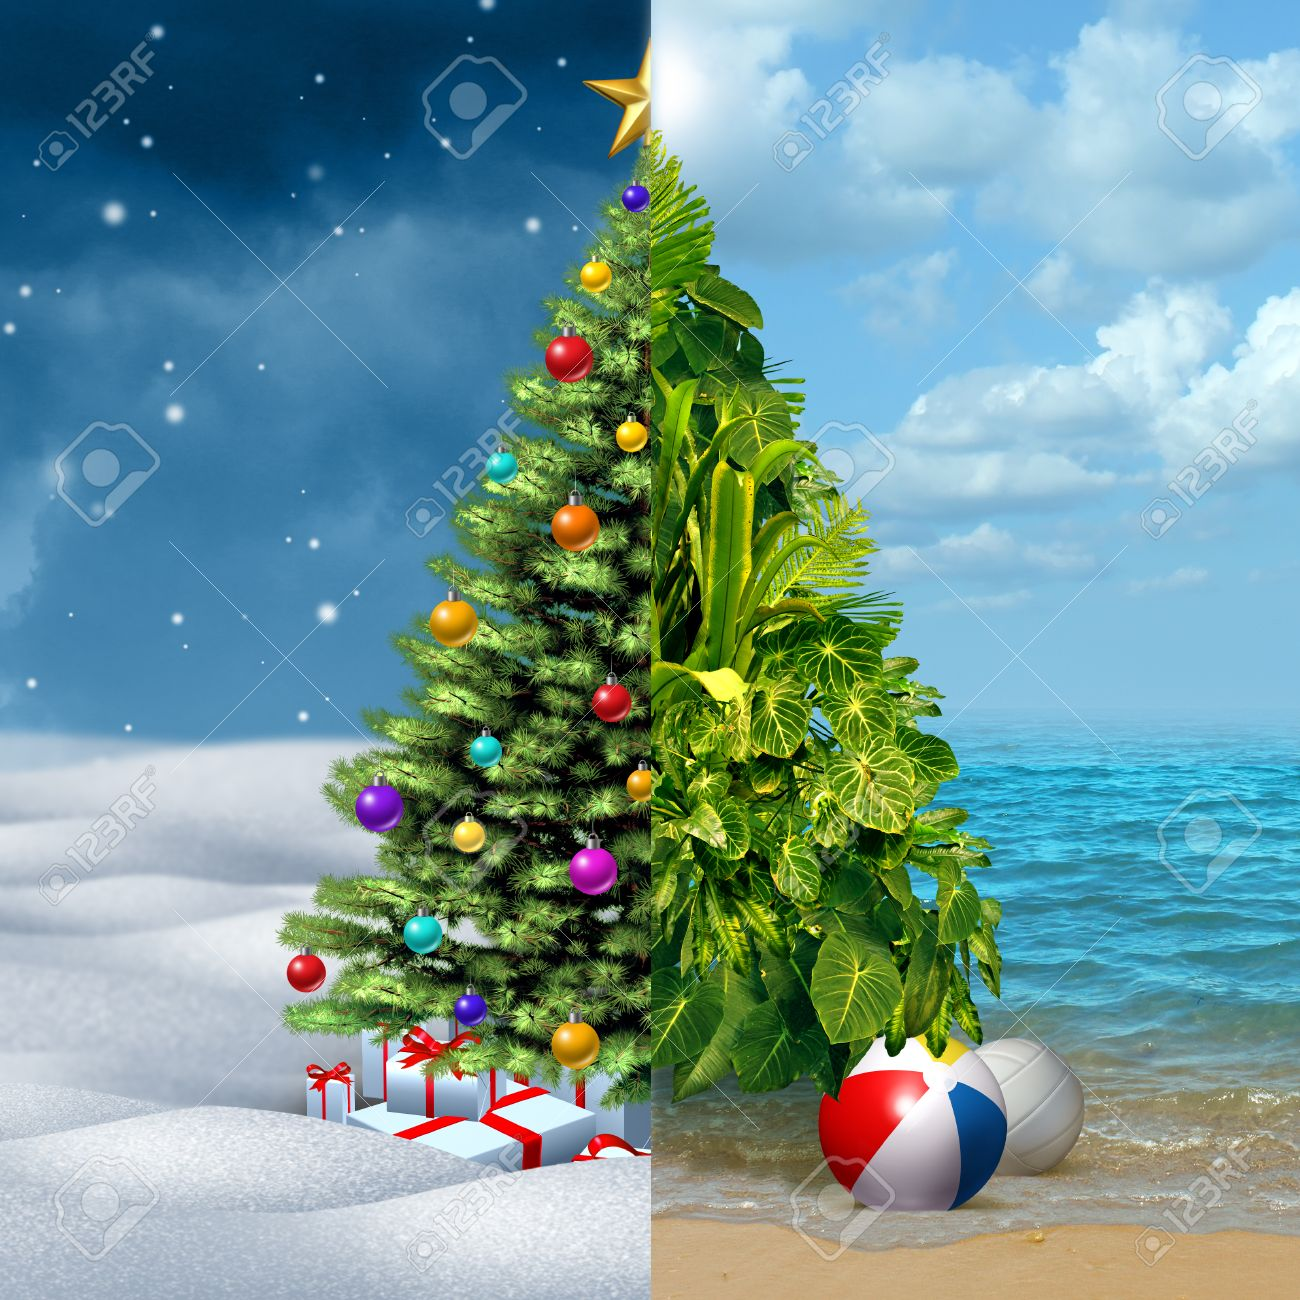 Half Christmas.Winter And Tropical Christmas Holiday Concept As A Festive Decorated